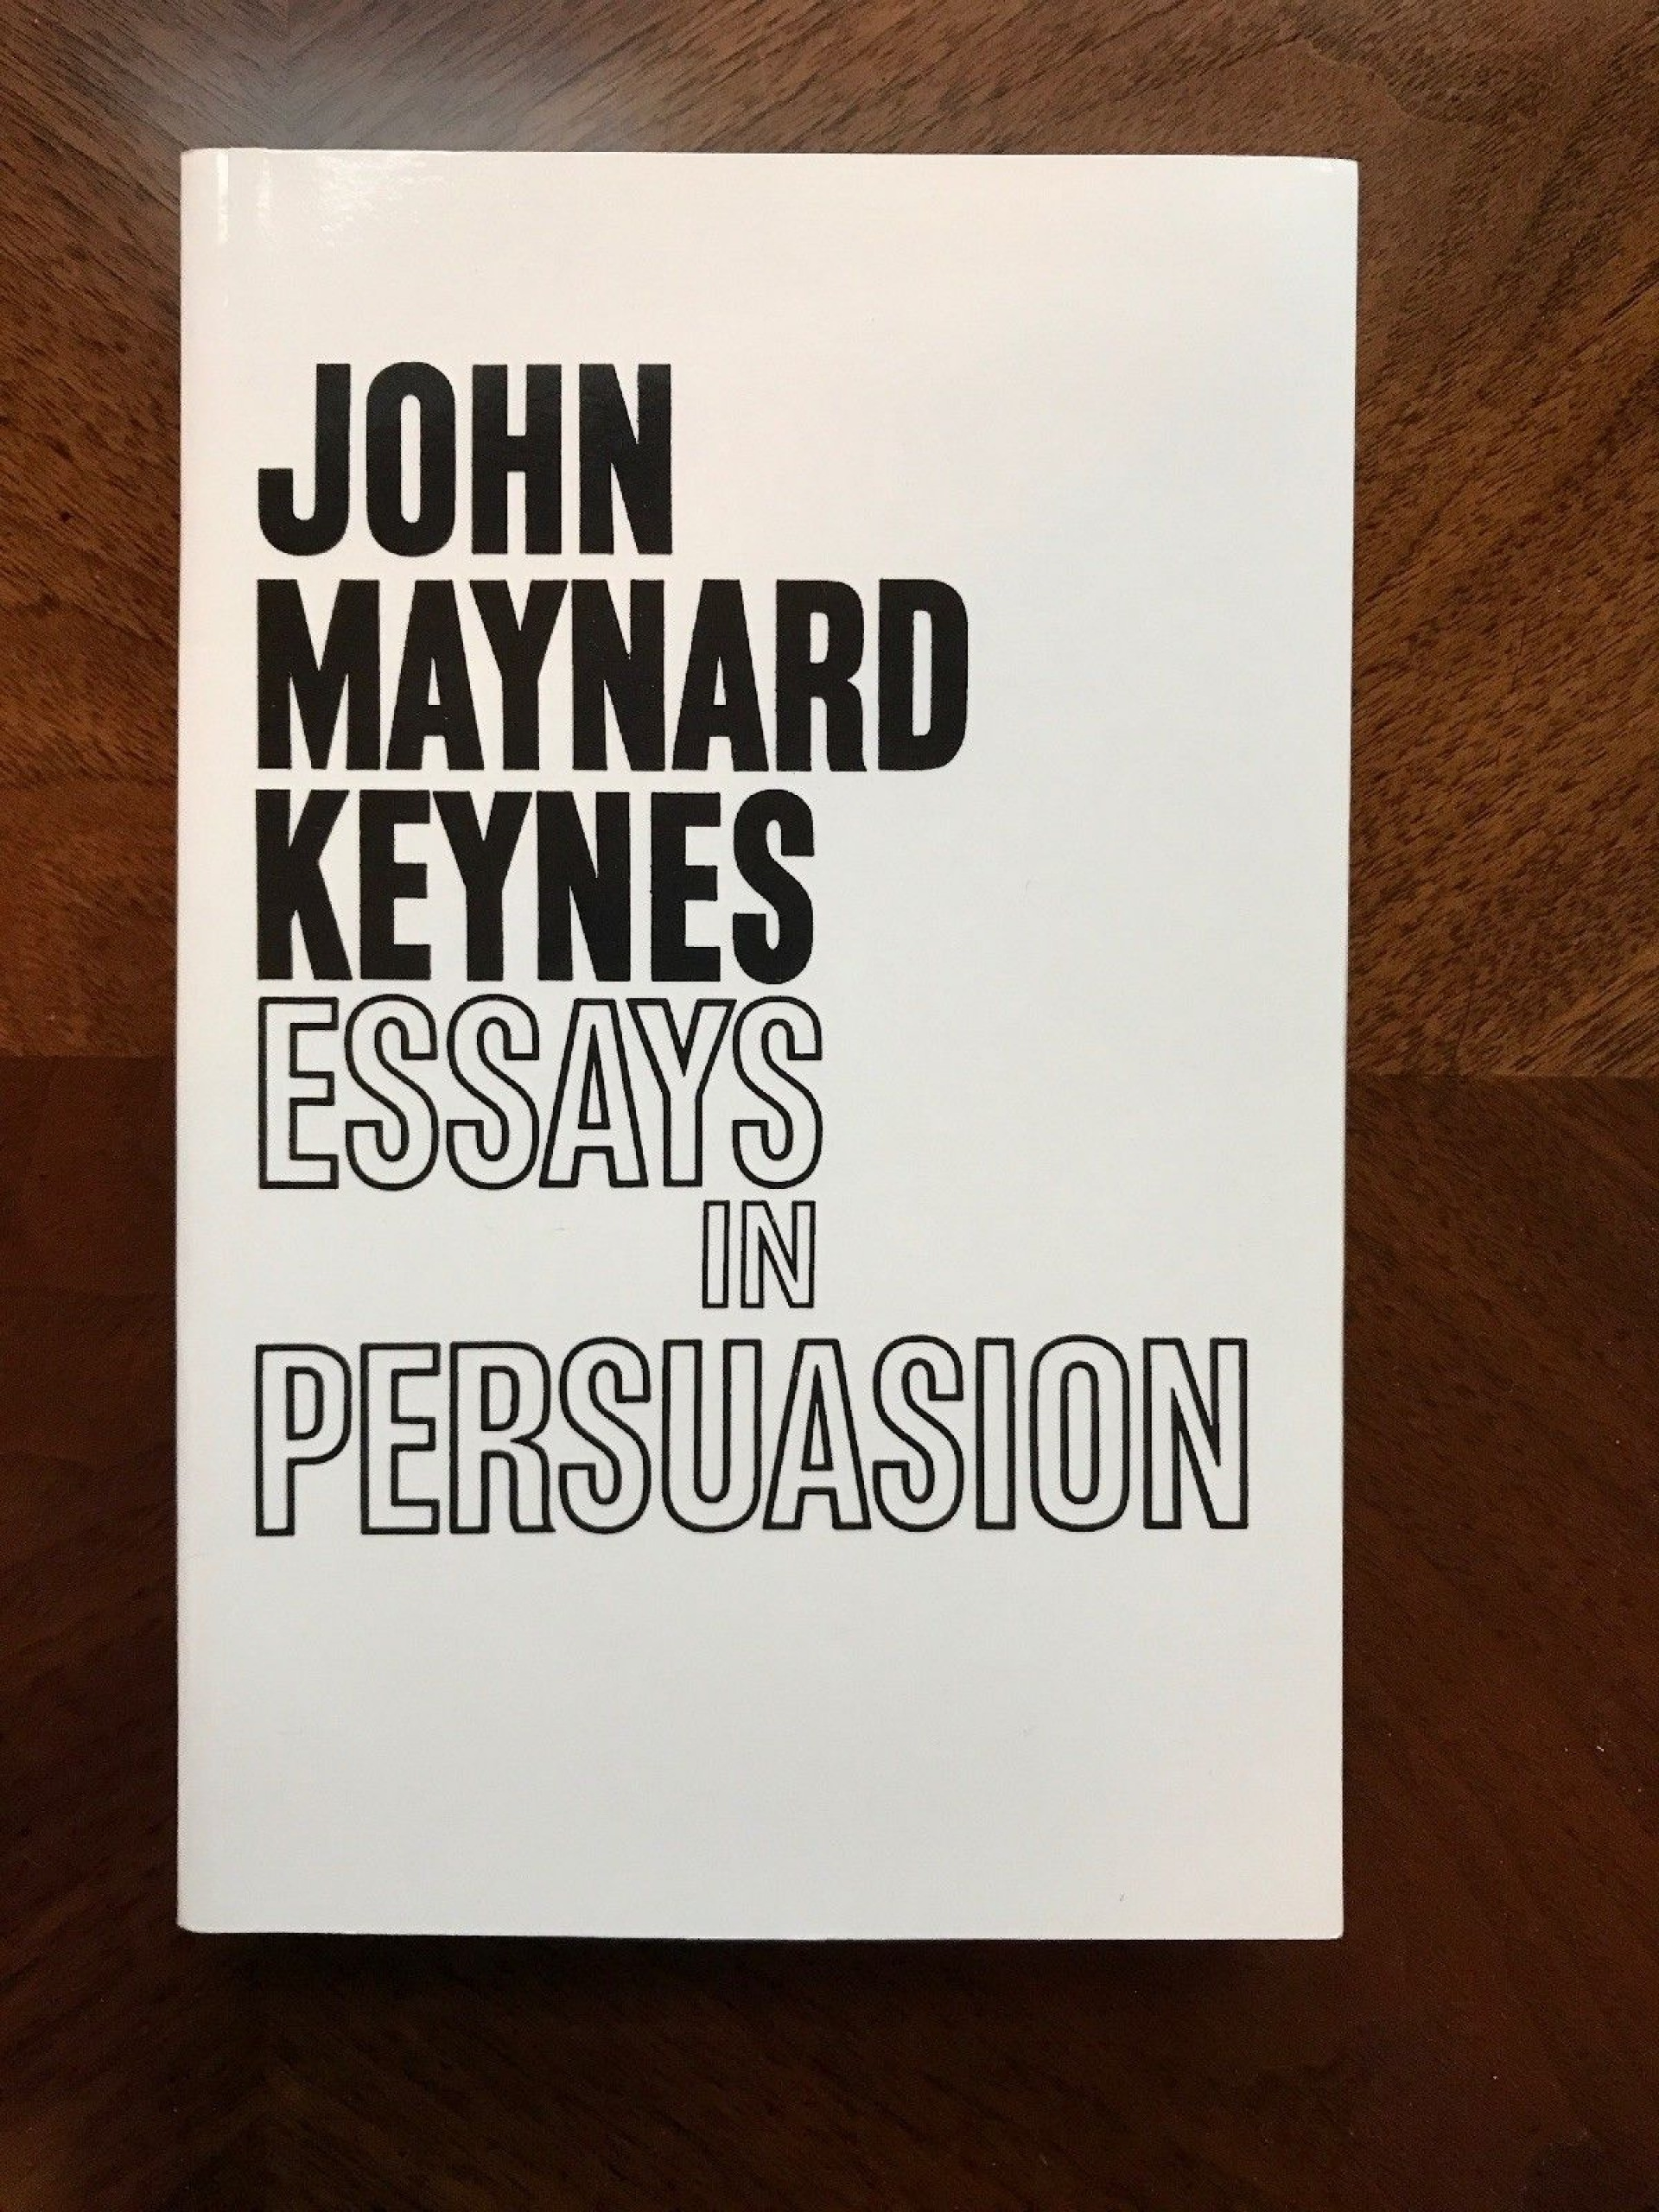 021 S L1600 Essay Example Essays In Remarkable Persuasion Keynes 1931 Wikipedia Summary 1920